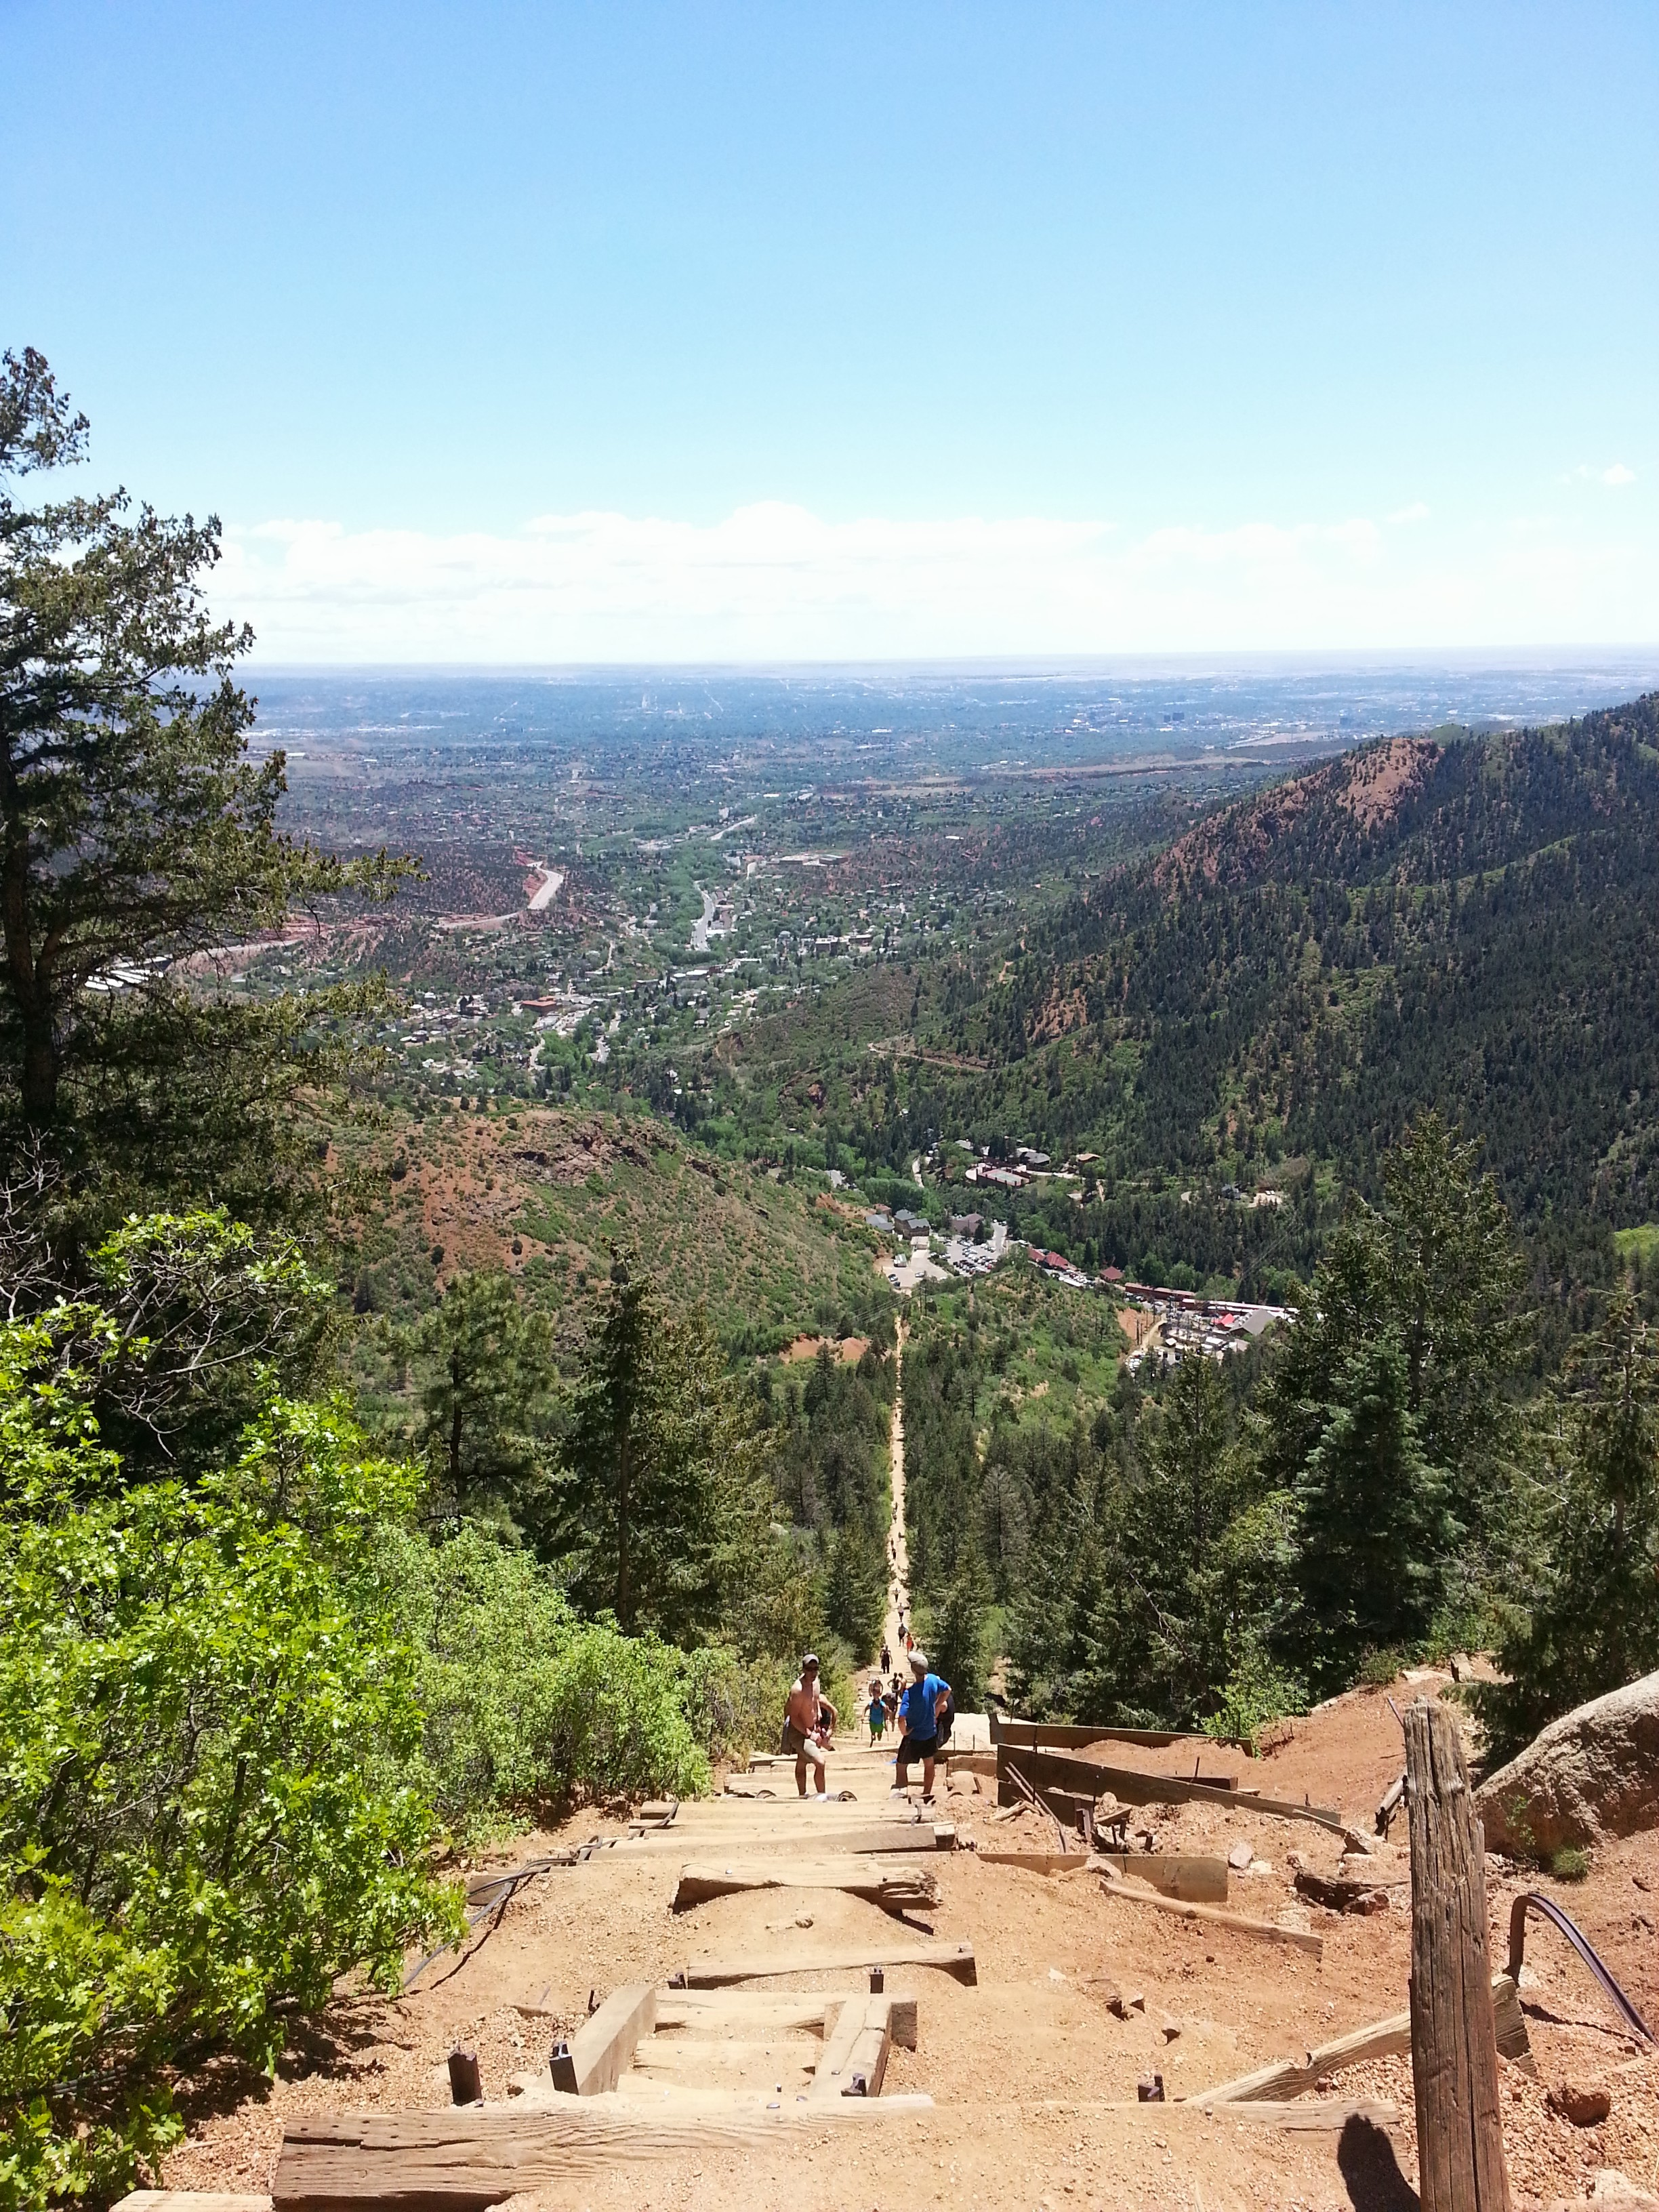 The Manitou Springs Incline is about.88 miles (1.42 km)., starts at 6,500 feet (2,000 m) with its Peak @ 8,590 feet (2,620 m).  An immense and rewarding challenge. At the  start point there is a sign stating: Extreme Hike. I think it should read - Extreme exhilaration. Ultimate view. Exceeding expectation. Intrinsic Insight.